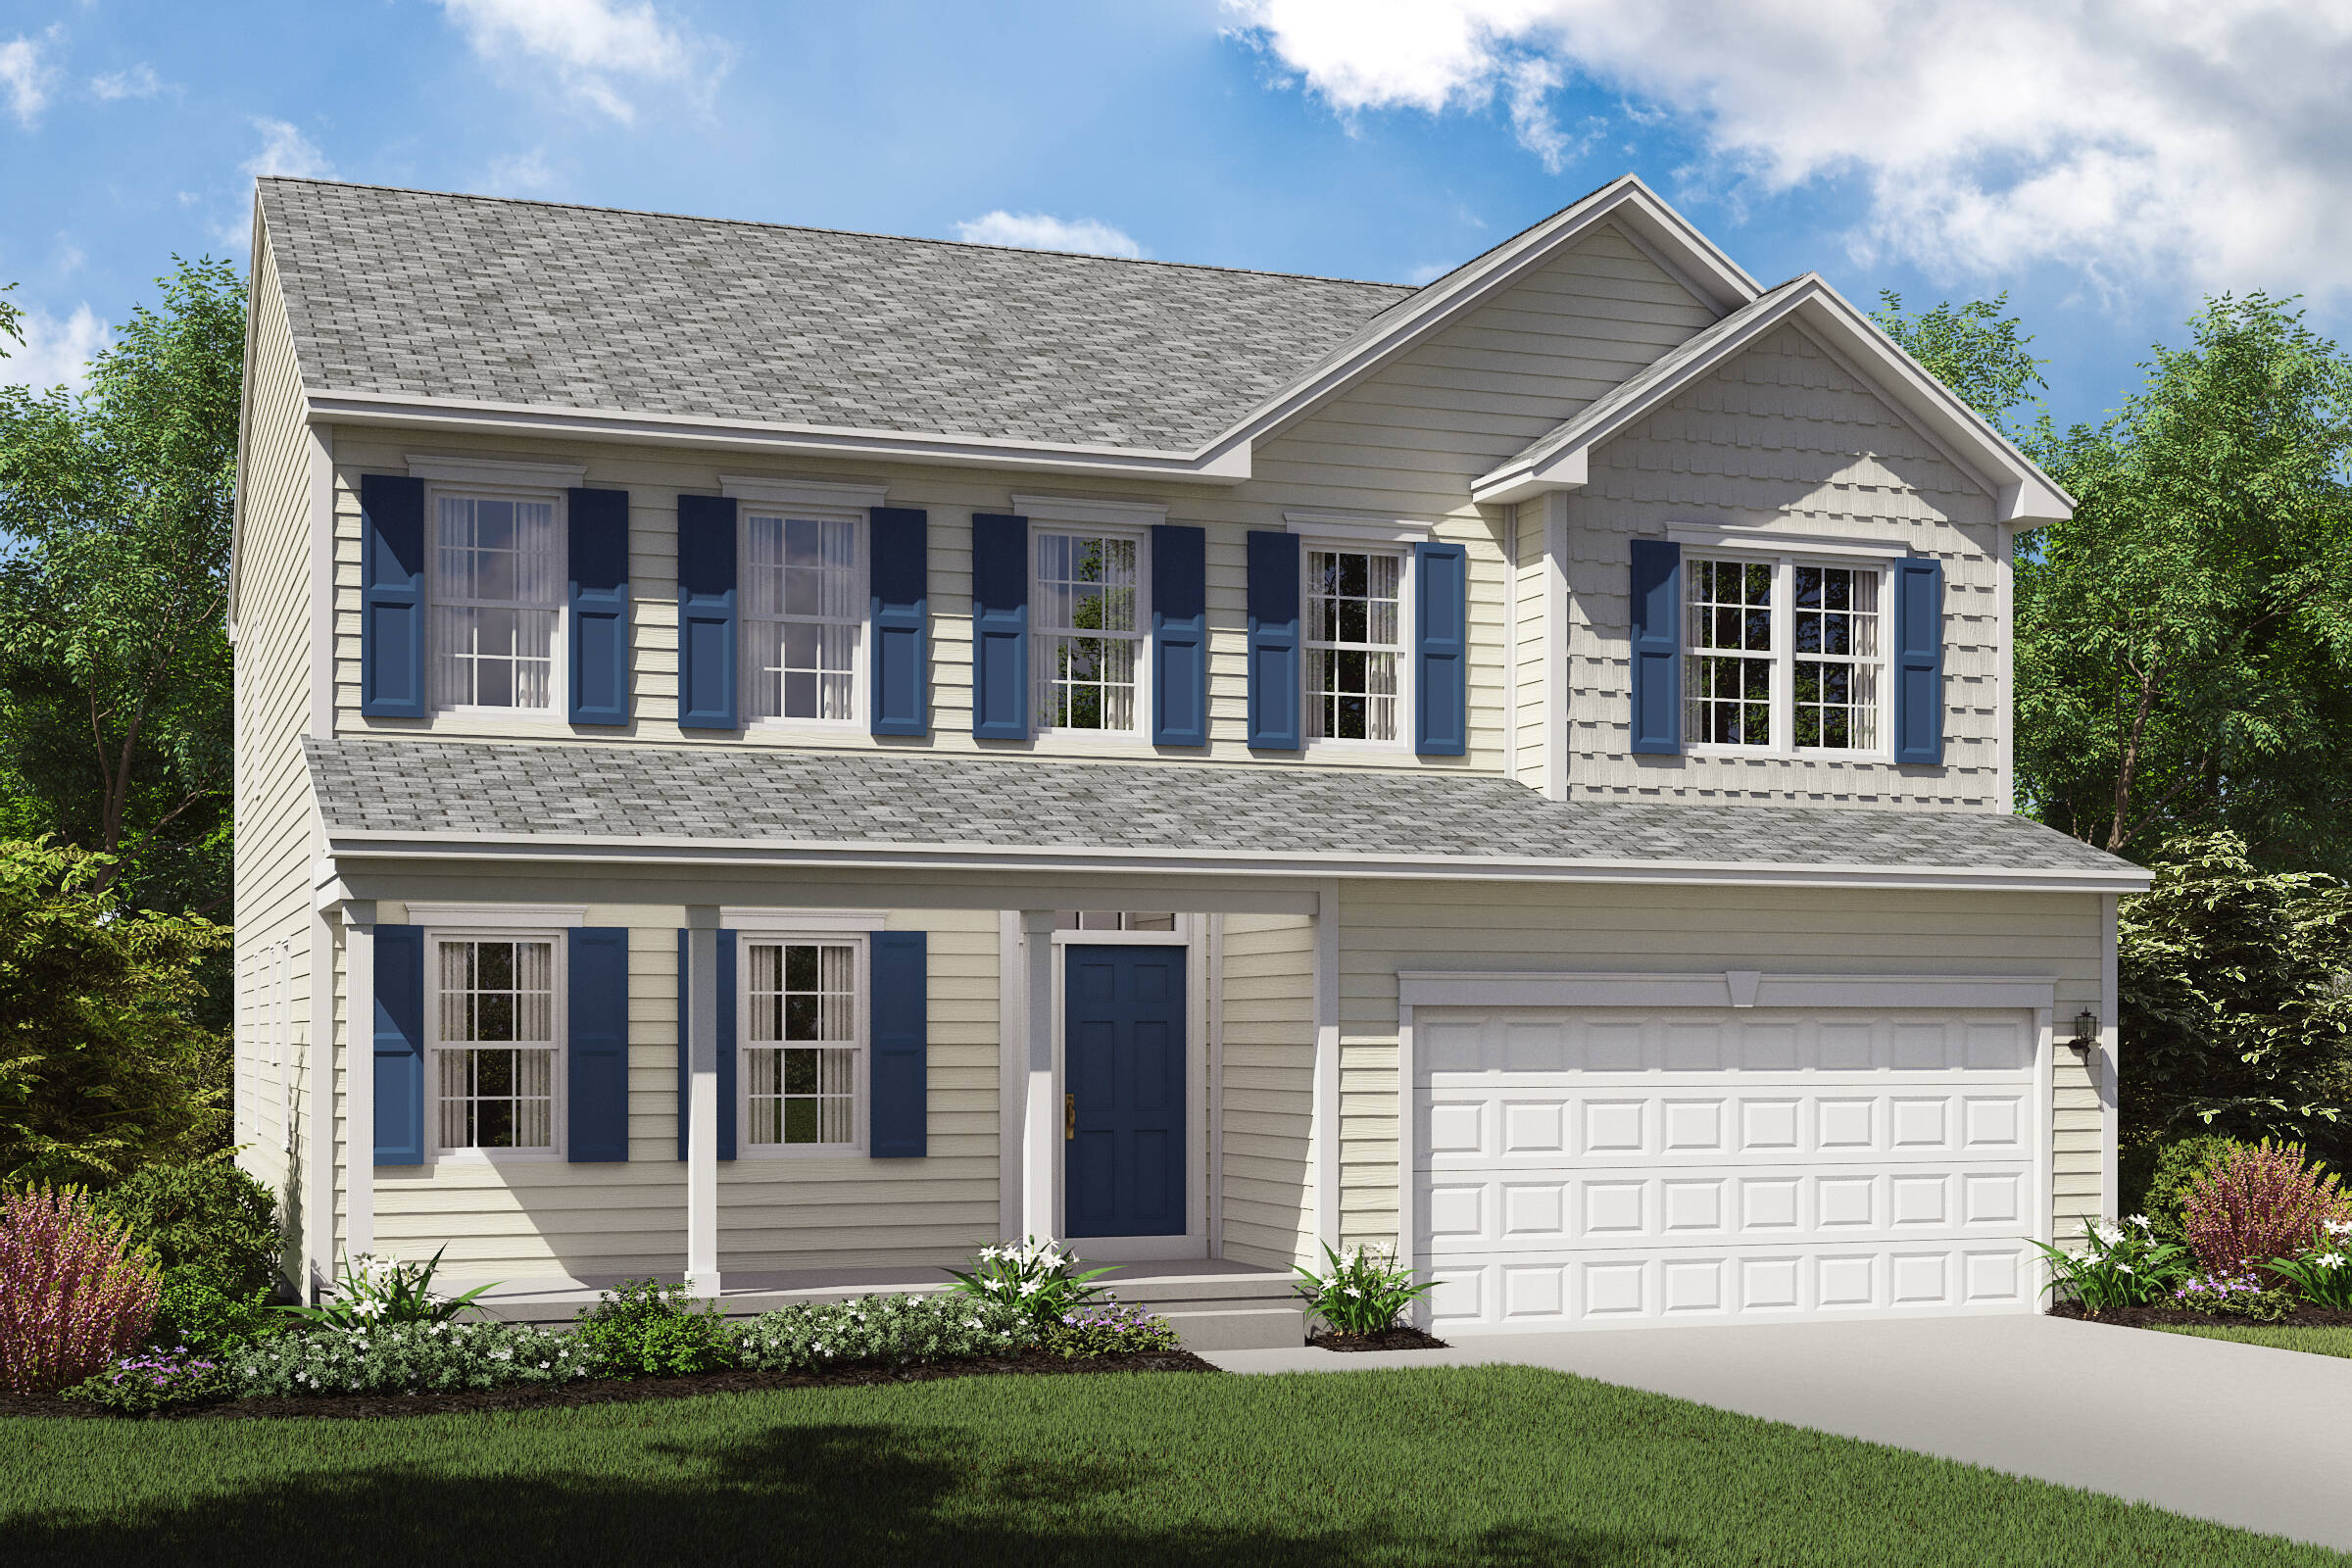 upscale new home design brantwood tallmadge ohio